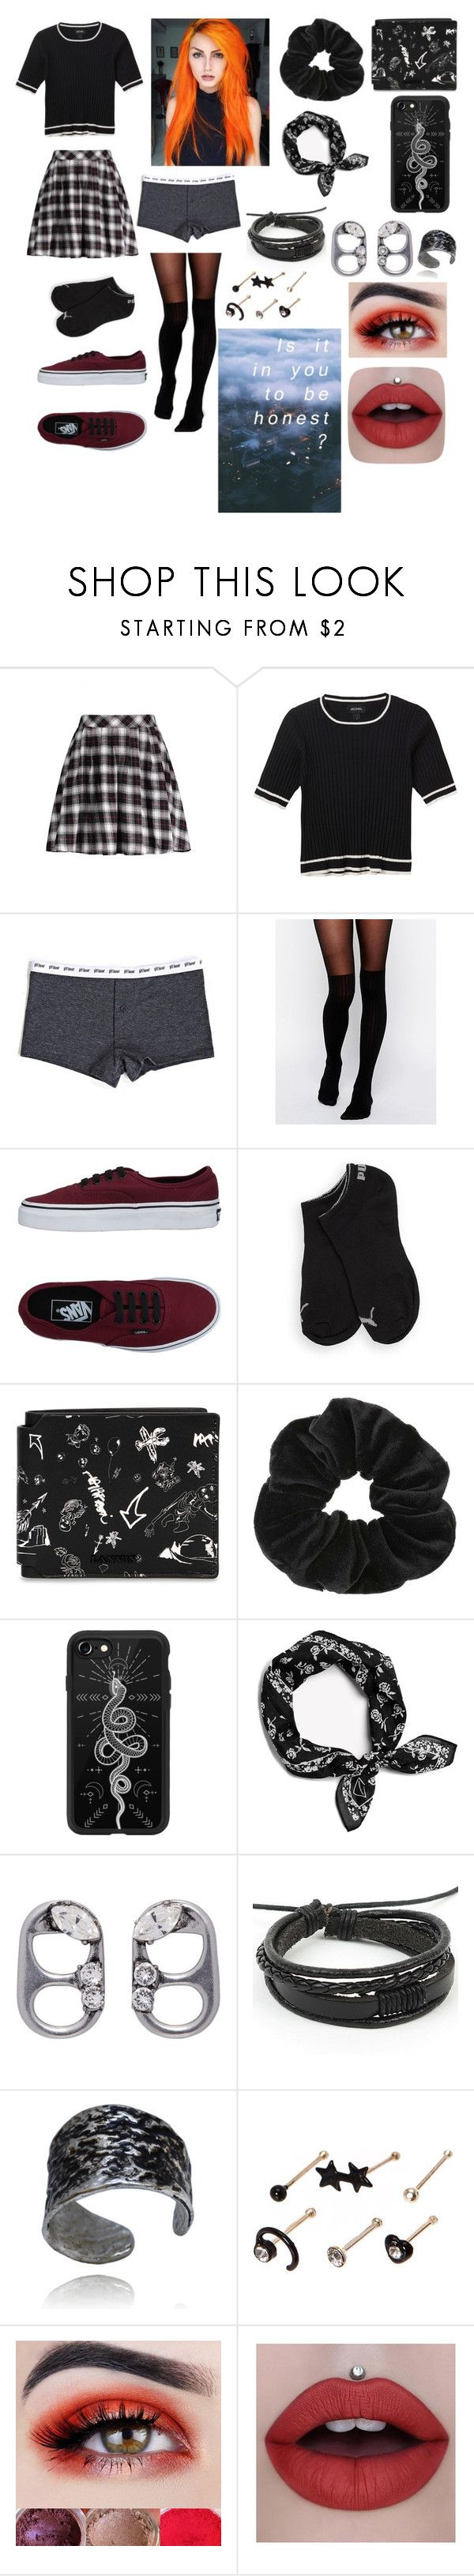 """""""Backseat Serenade"""" by sweetheart-the-moonbear ❤ liked on Polyvore featuring Monki, ASOS, Vans, Puma, Lanvin, Miss Selfridge, Casetify, Marc Jacobs and claire's"""